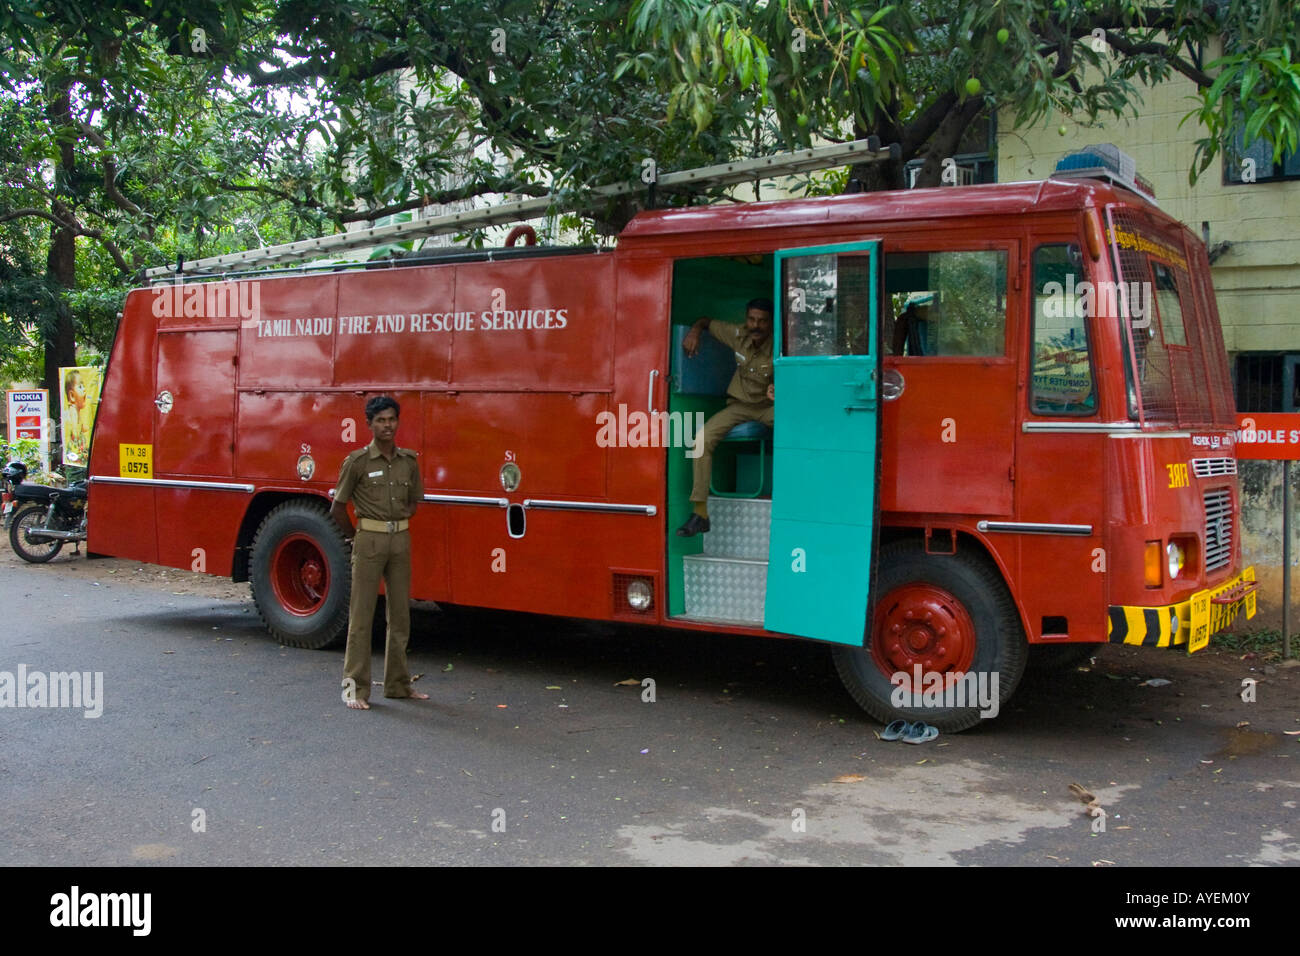 Fire Engine Rescue Services Truck In Chennai South India   Stock Image